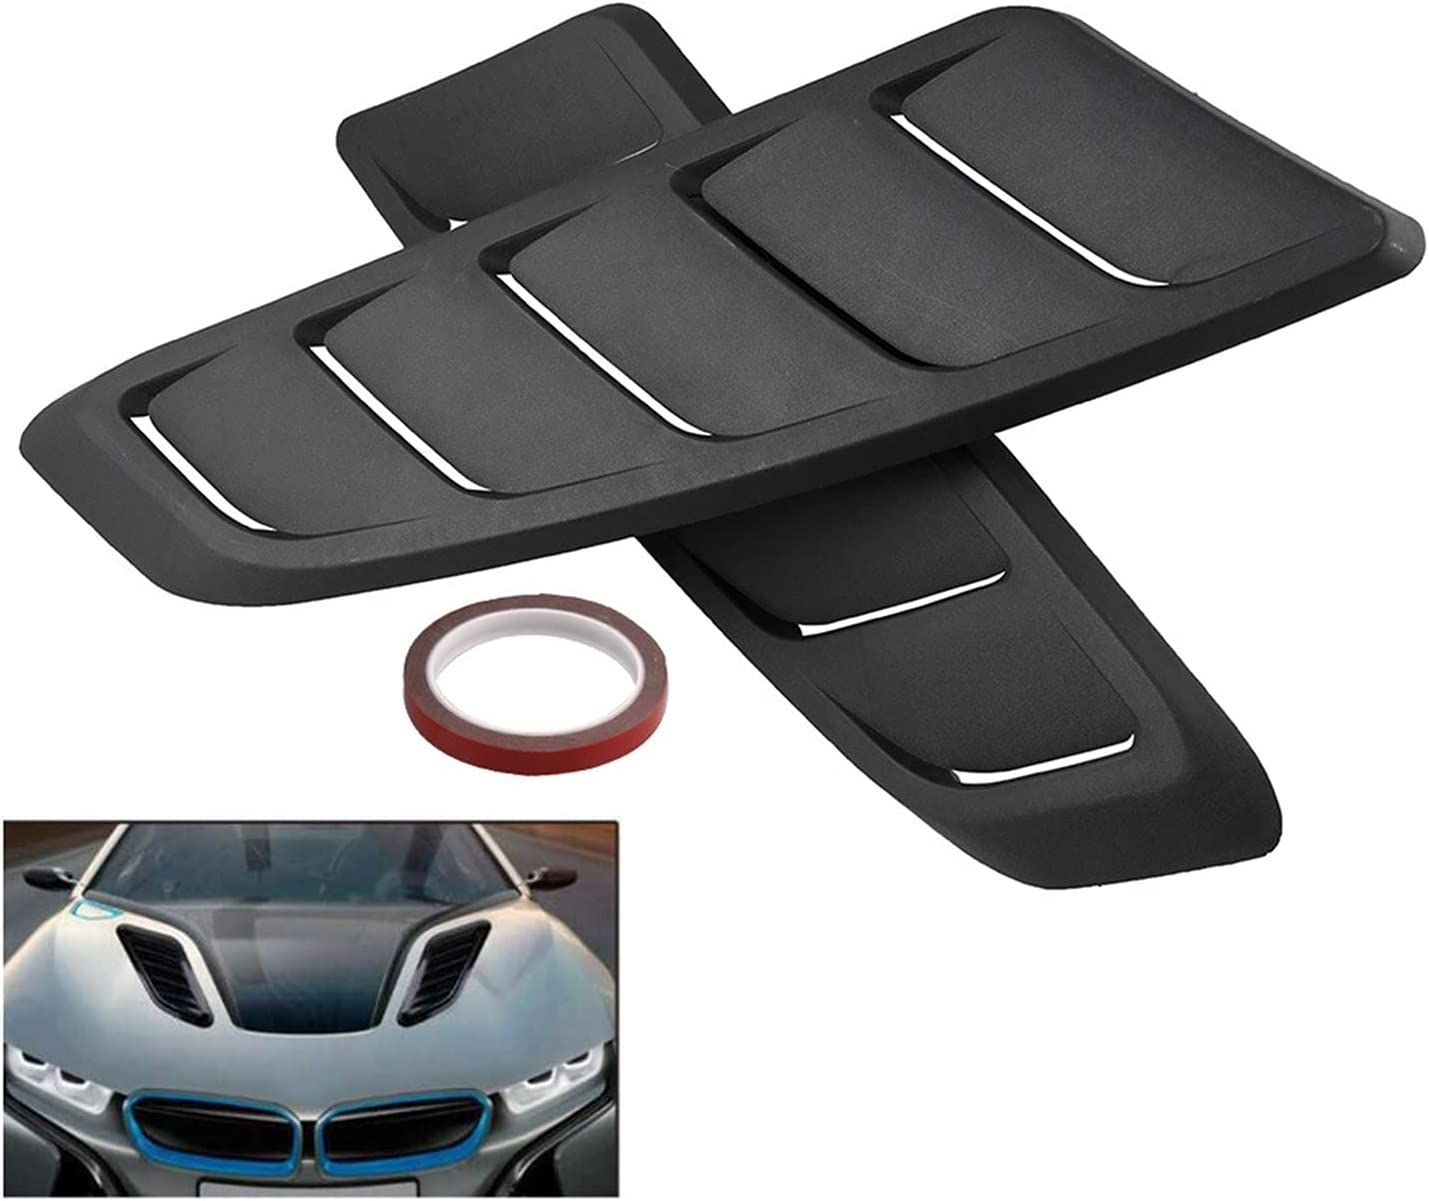 Car Exterior Louver Intake Vent F Universal Max 80% OFF Virginia Beach Mall Cover Air Scoops